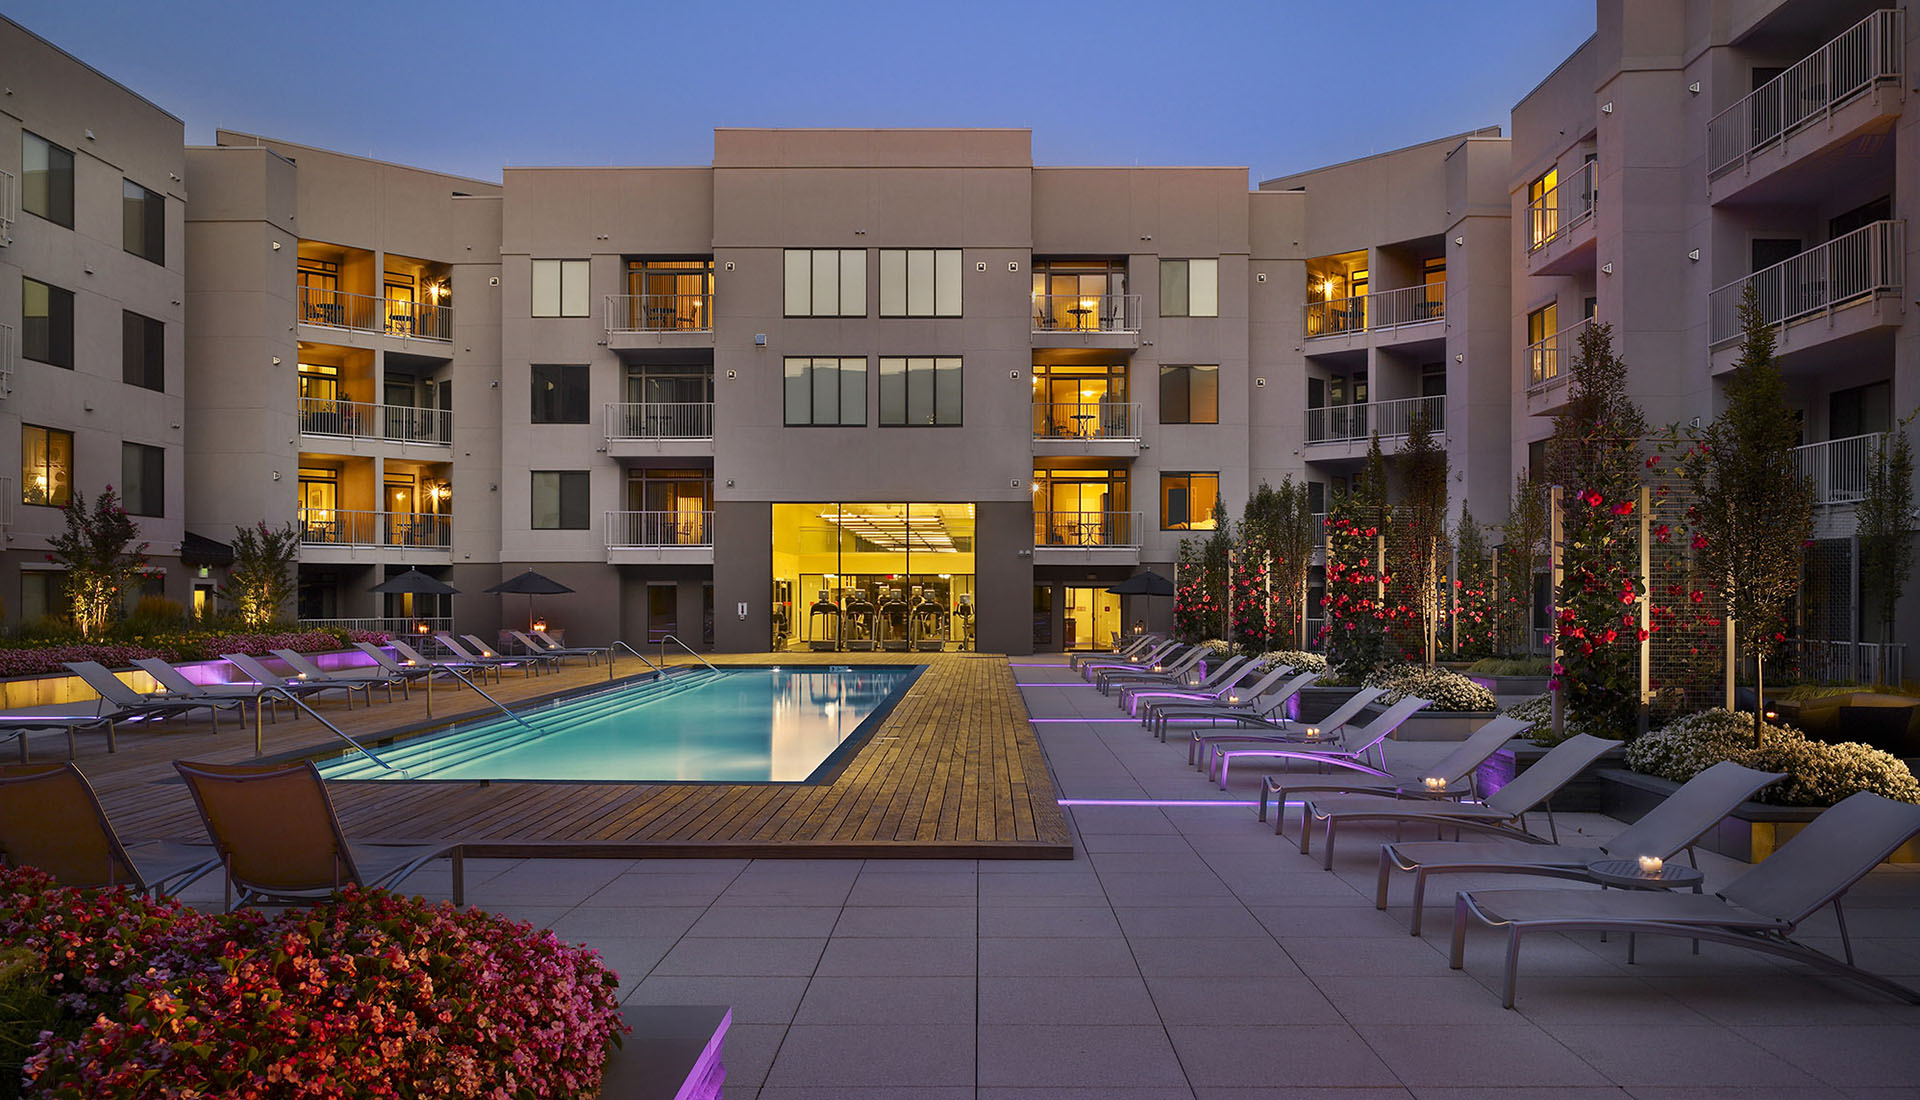 Clifton Luxury Apartments for Rent in New Jersey - AVE Living